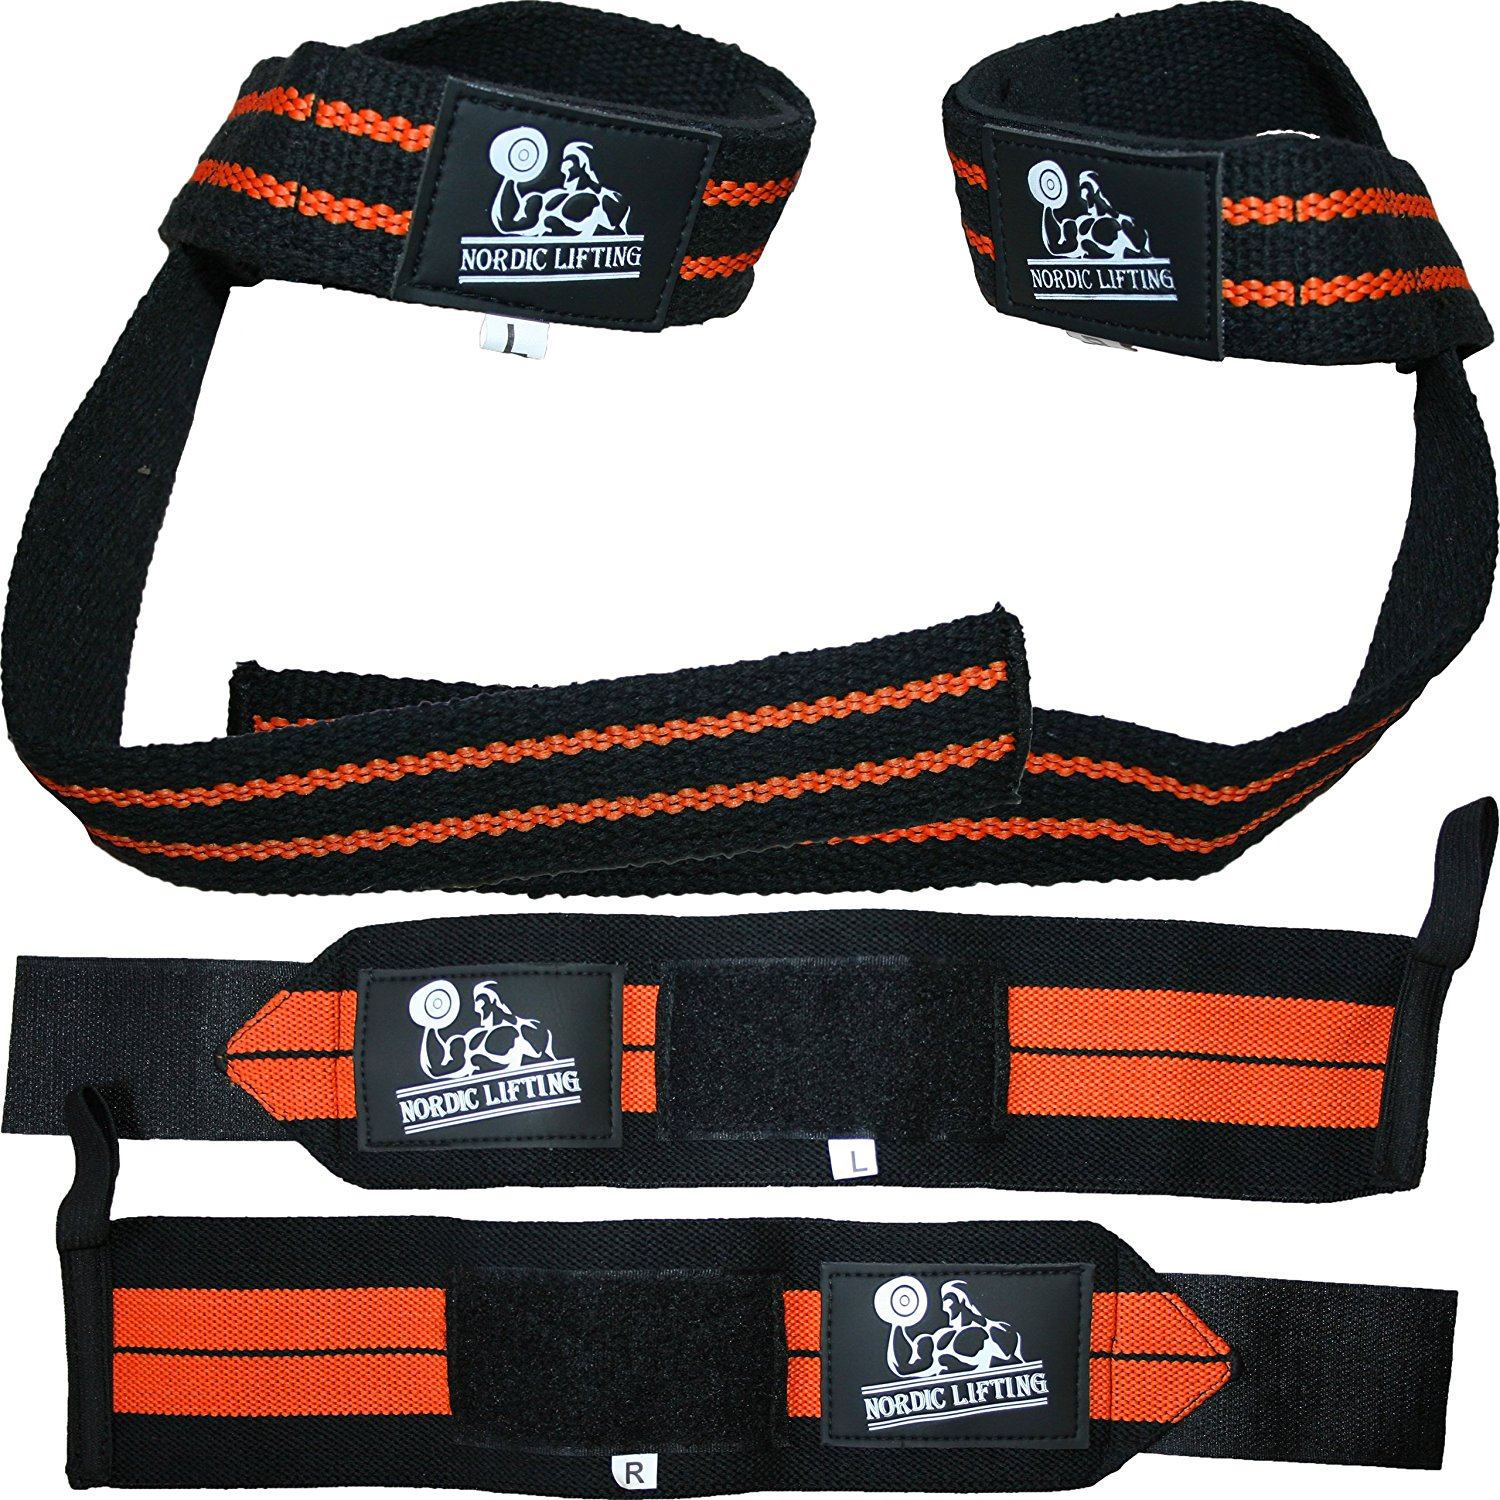 9. Nordic Lifting Straps Bundle